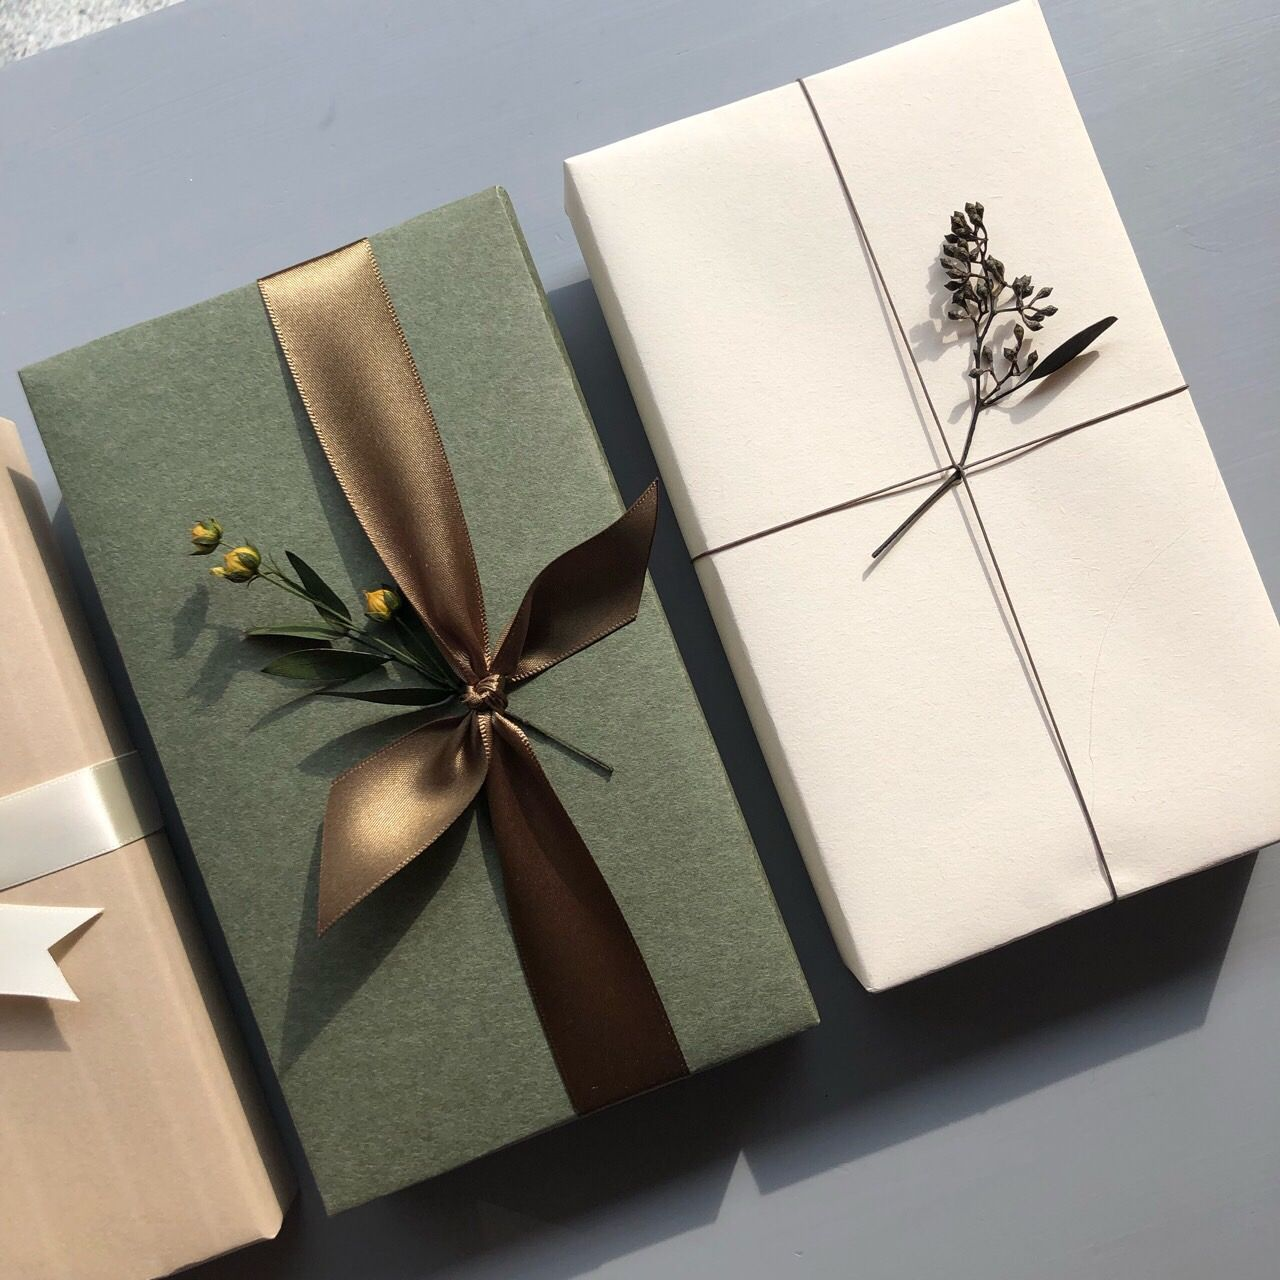 Gift Wrapping, Minimally.